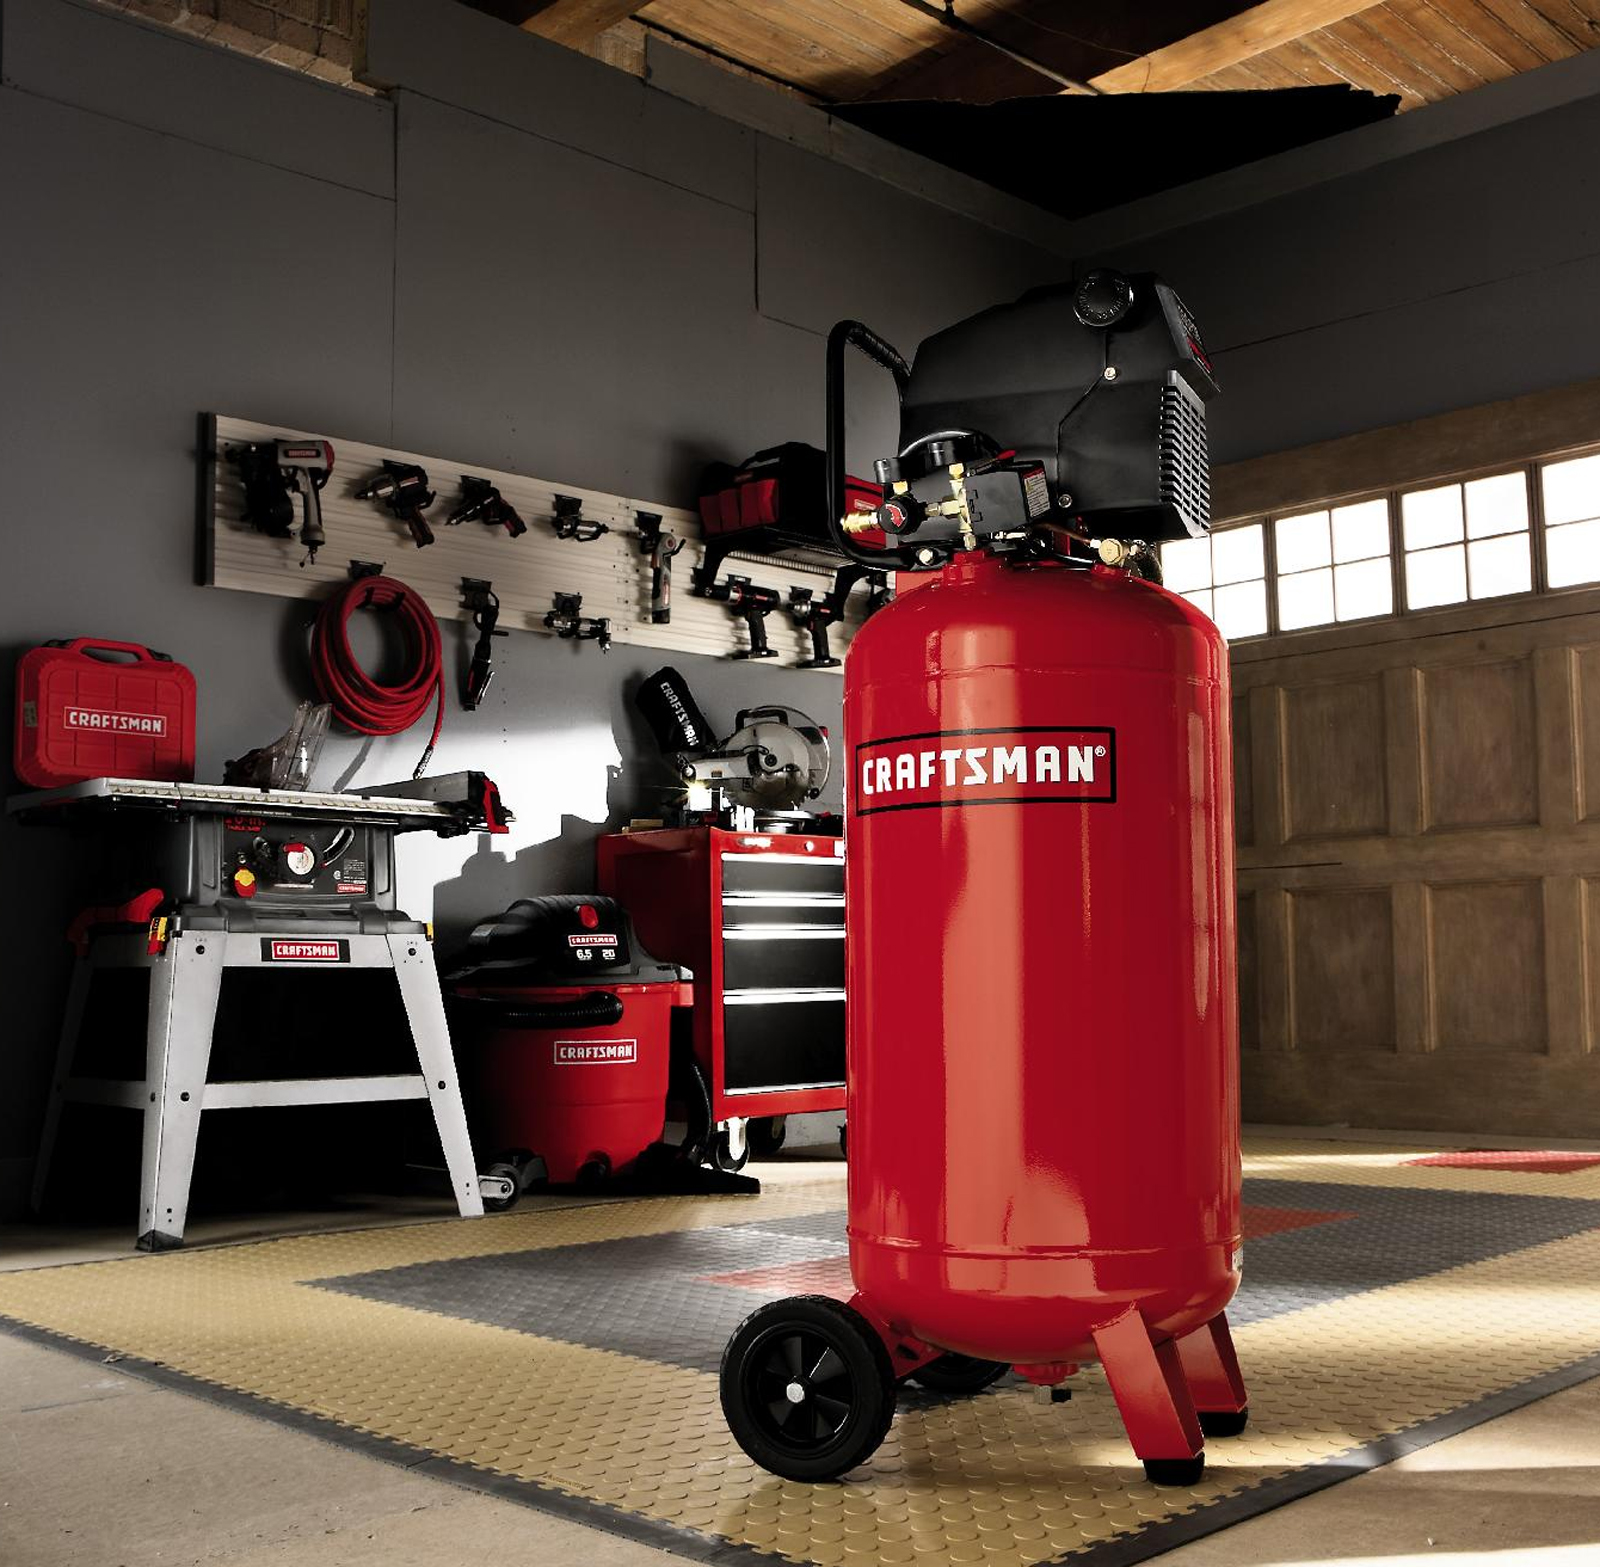 Craftsman 26 Gallon Air Compressor with Impact Wrench and Ratchet